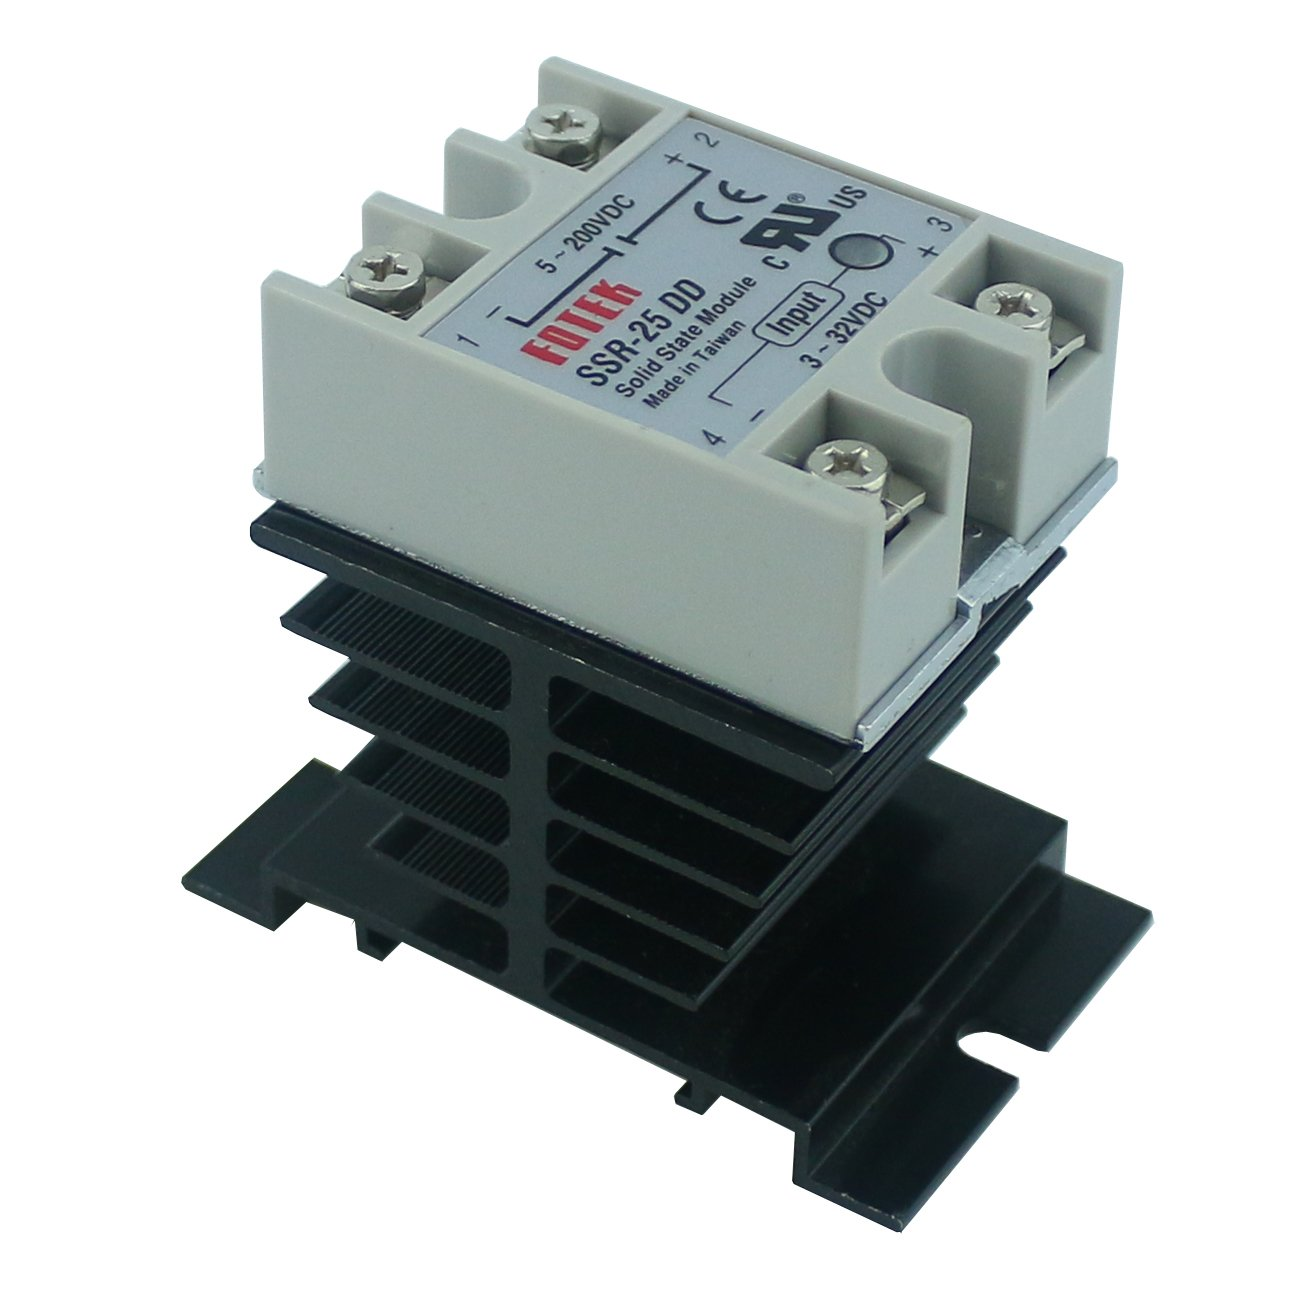 Spdt Solid State Relay 12v Ogrmar Ssr 40dd 40a Dc 3 32v 5 200v Heat Sink 40 Dd Grey And Black Home Improvement